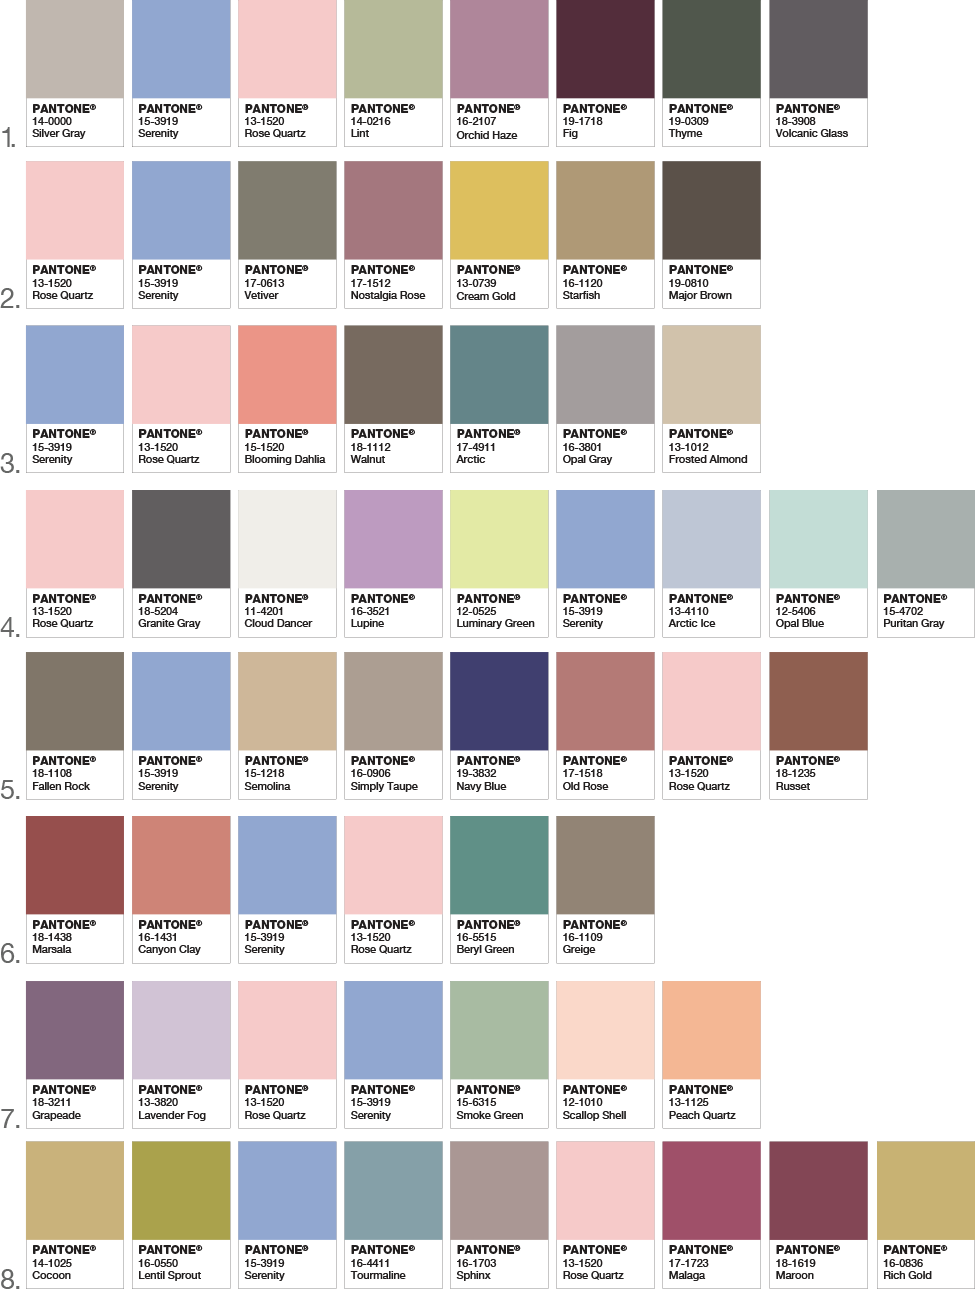 Home Decor Color Palettes 1000 images about jewelry color group ideas on pinterest color palettes coordinating colors and color swatches Color Inspiration For Your Home Decor Color Palettes That Co Ordinate With Pantones Colors